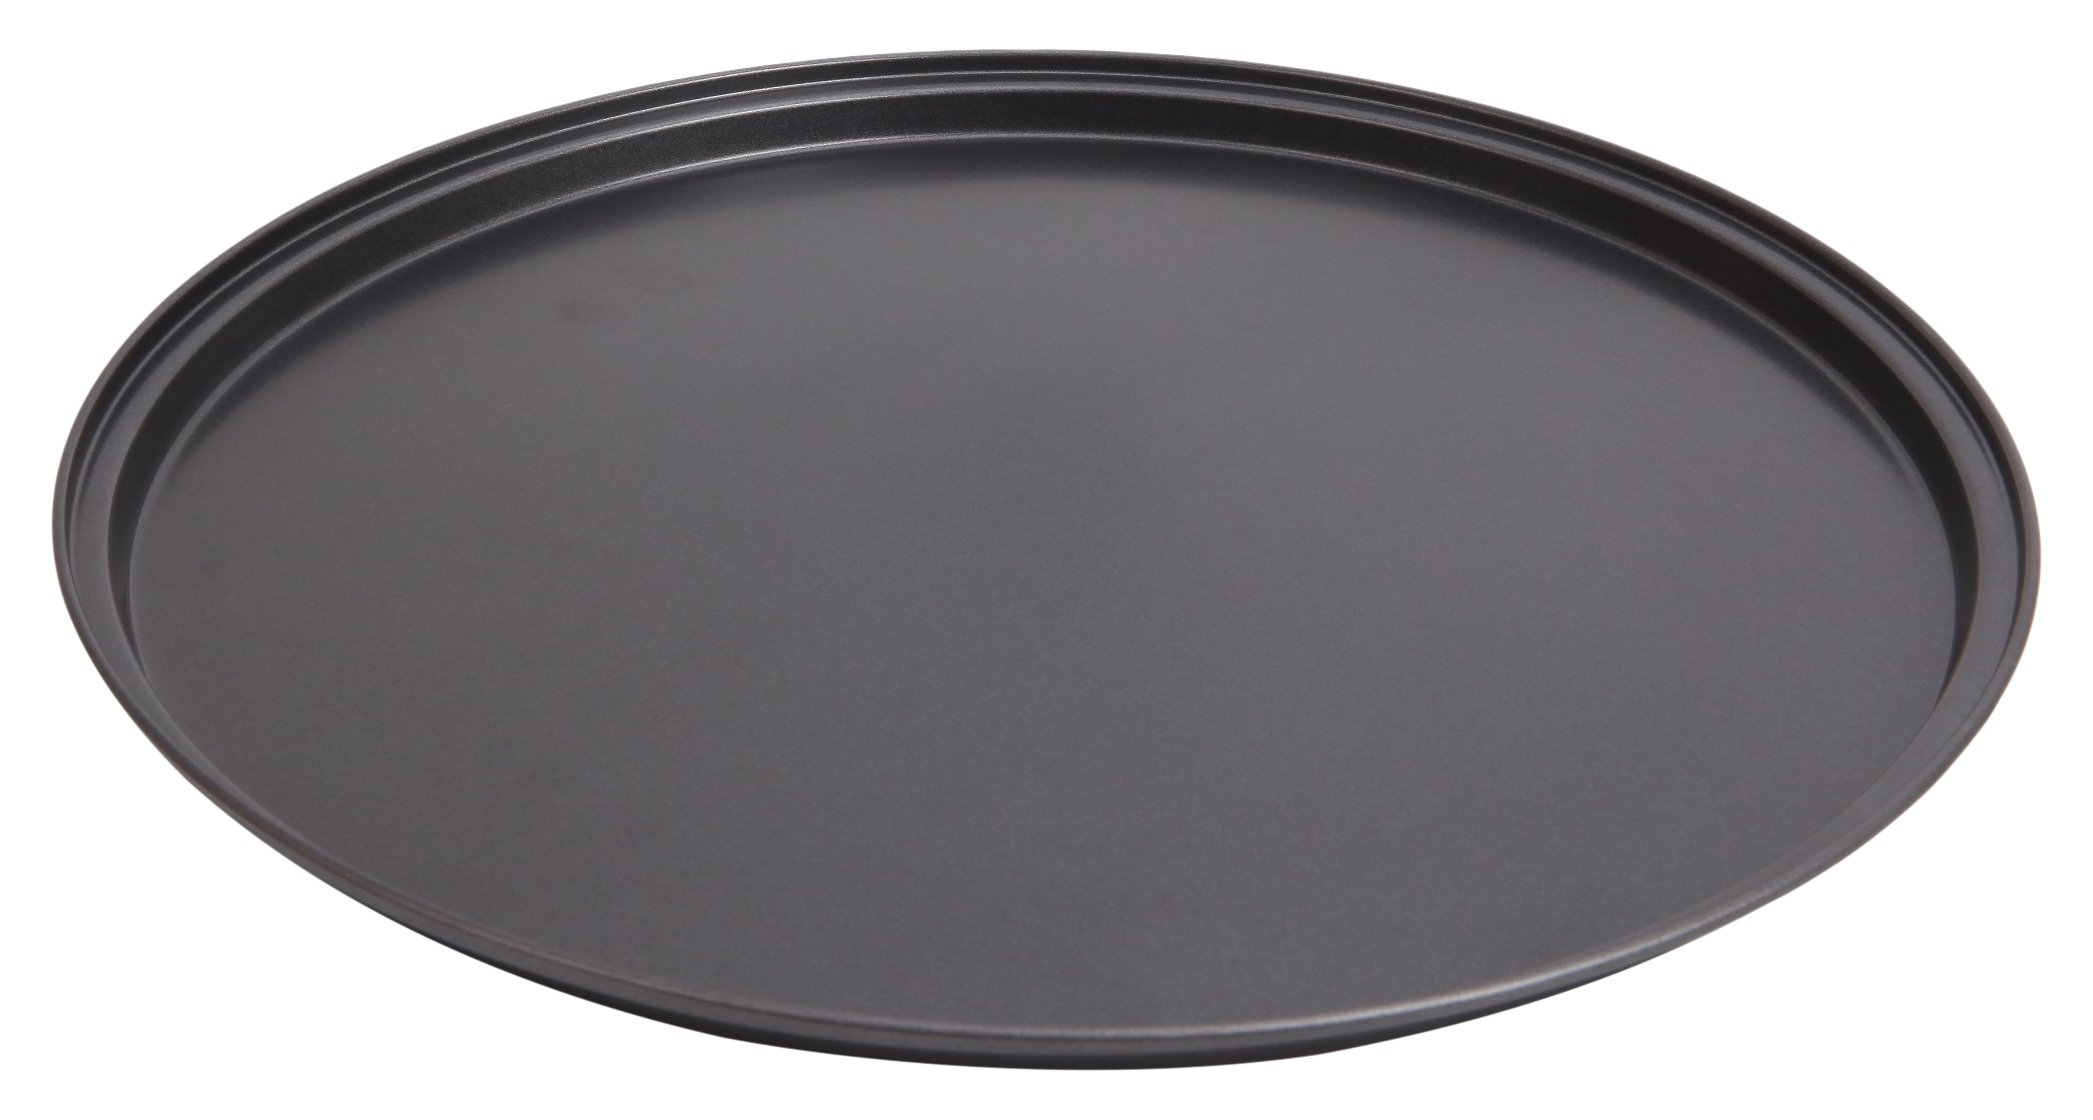 Wee's Beyond 6852-C Non-Stick Easy Release Pizza Pan 13.5'', Dark Gray by Wee's Beyond